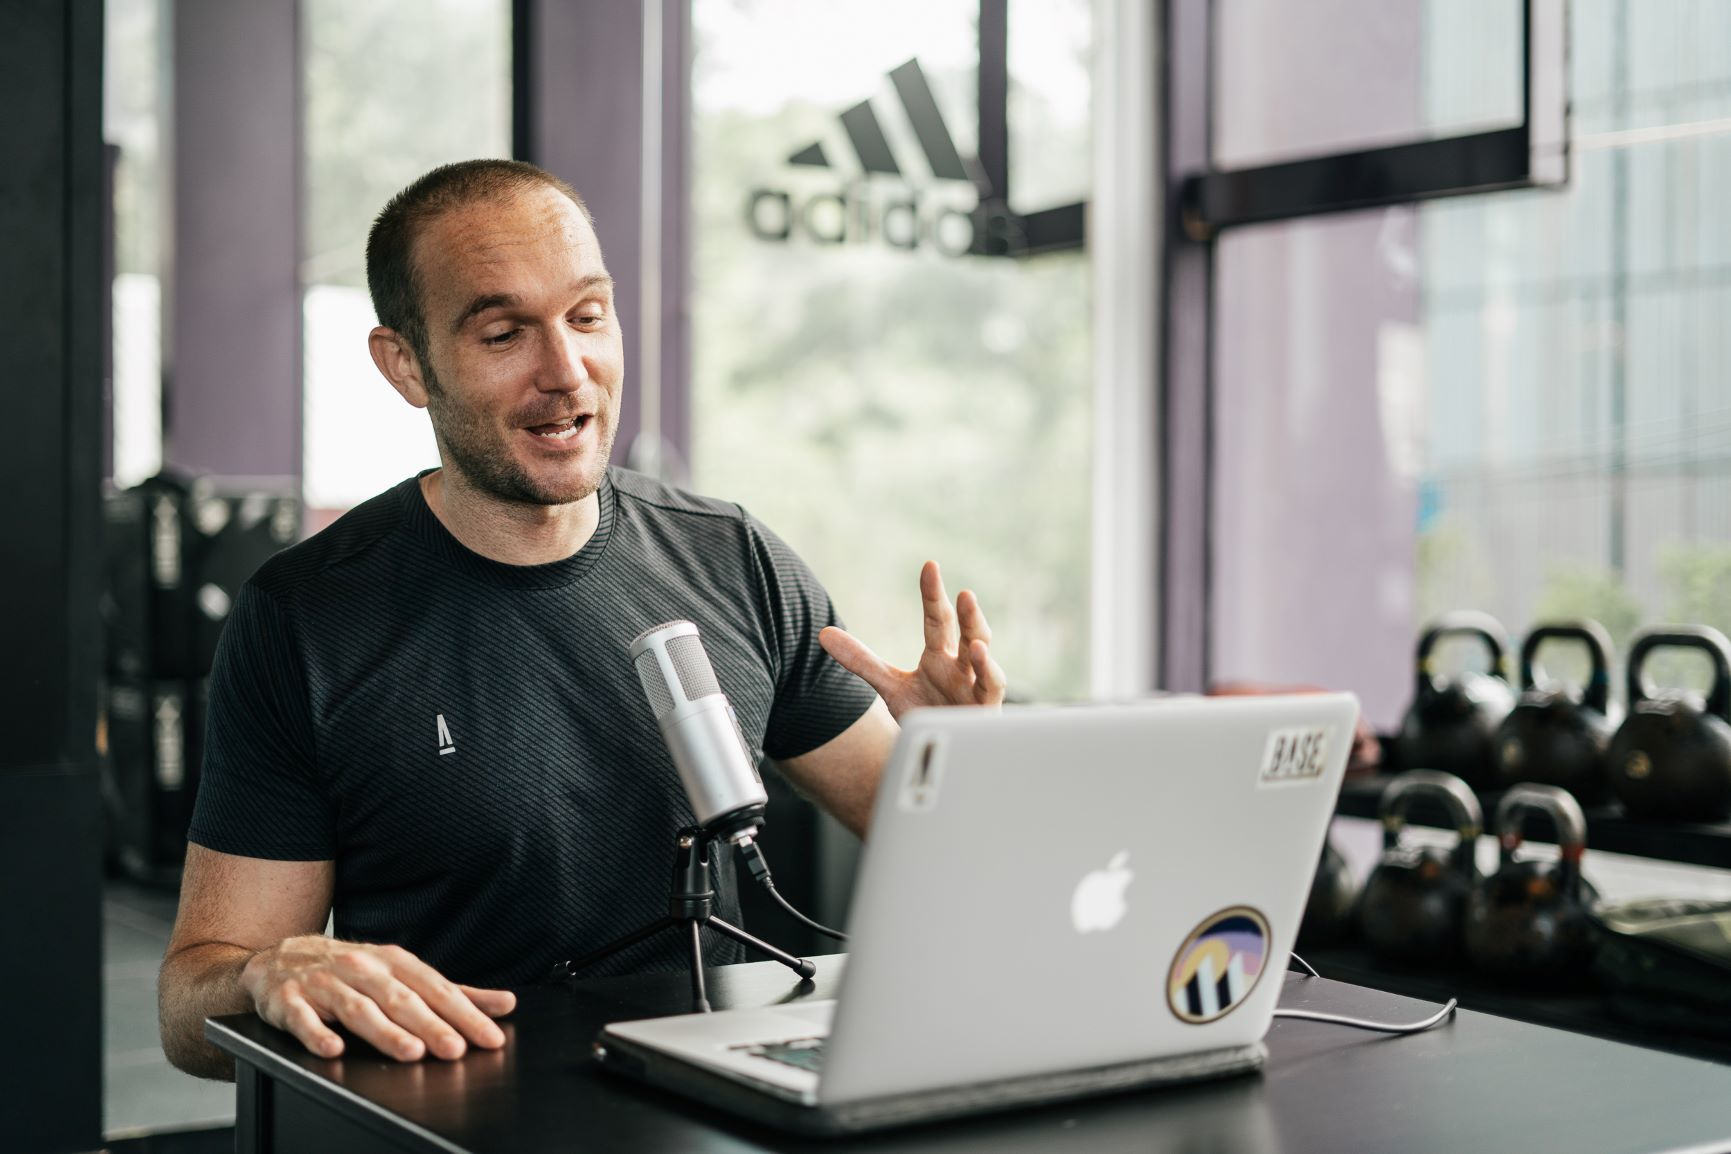 Fitness studio BASE launches podcast channel